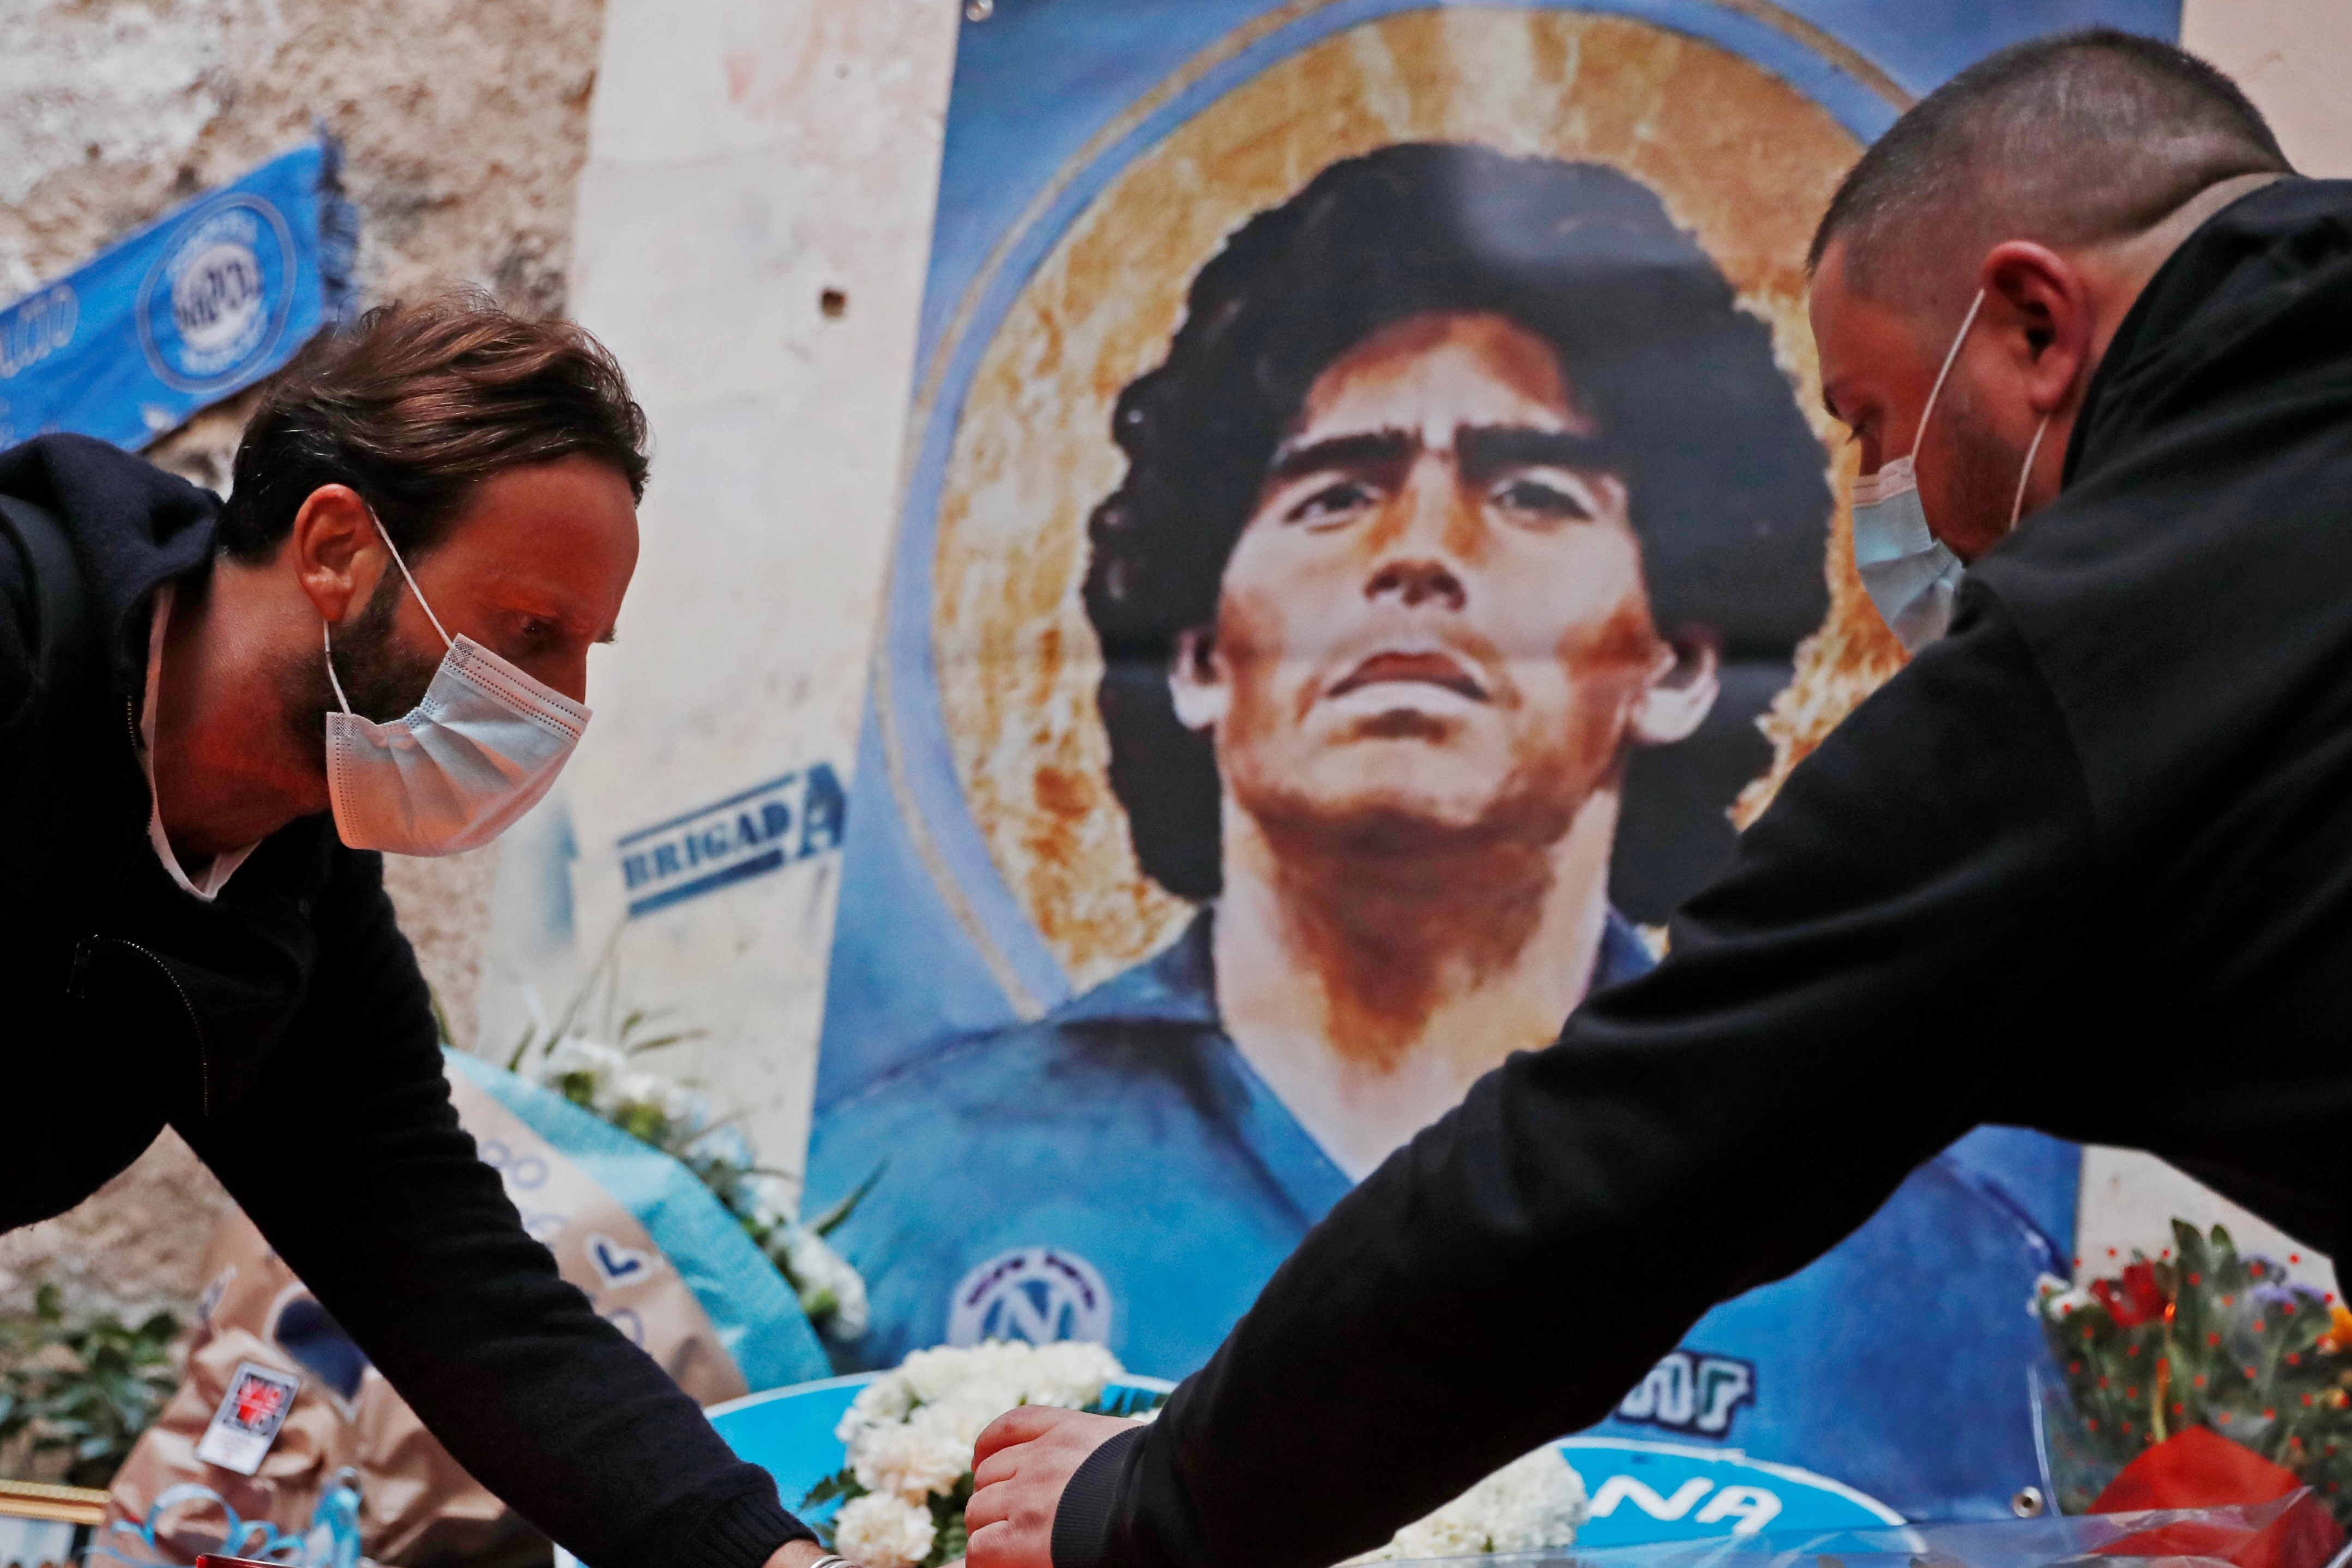 People mourn the death of Argentine soccer legend Diego Maradona, Naples, Italy - November 26, 2020